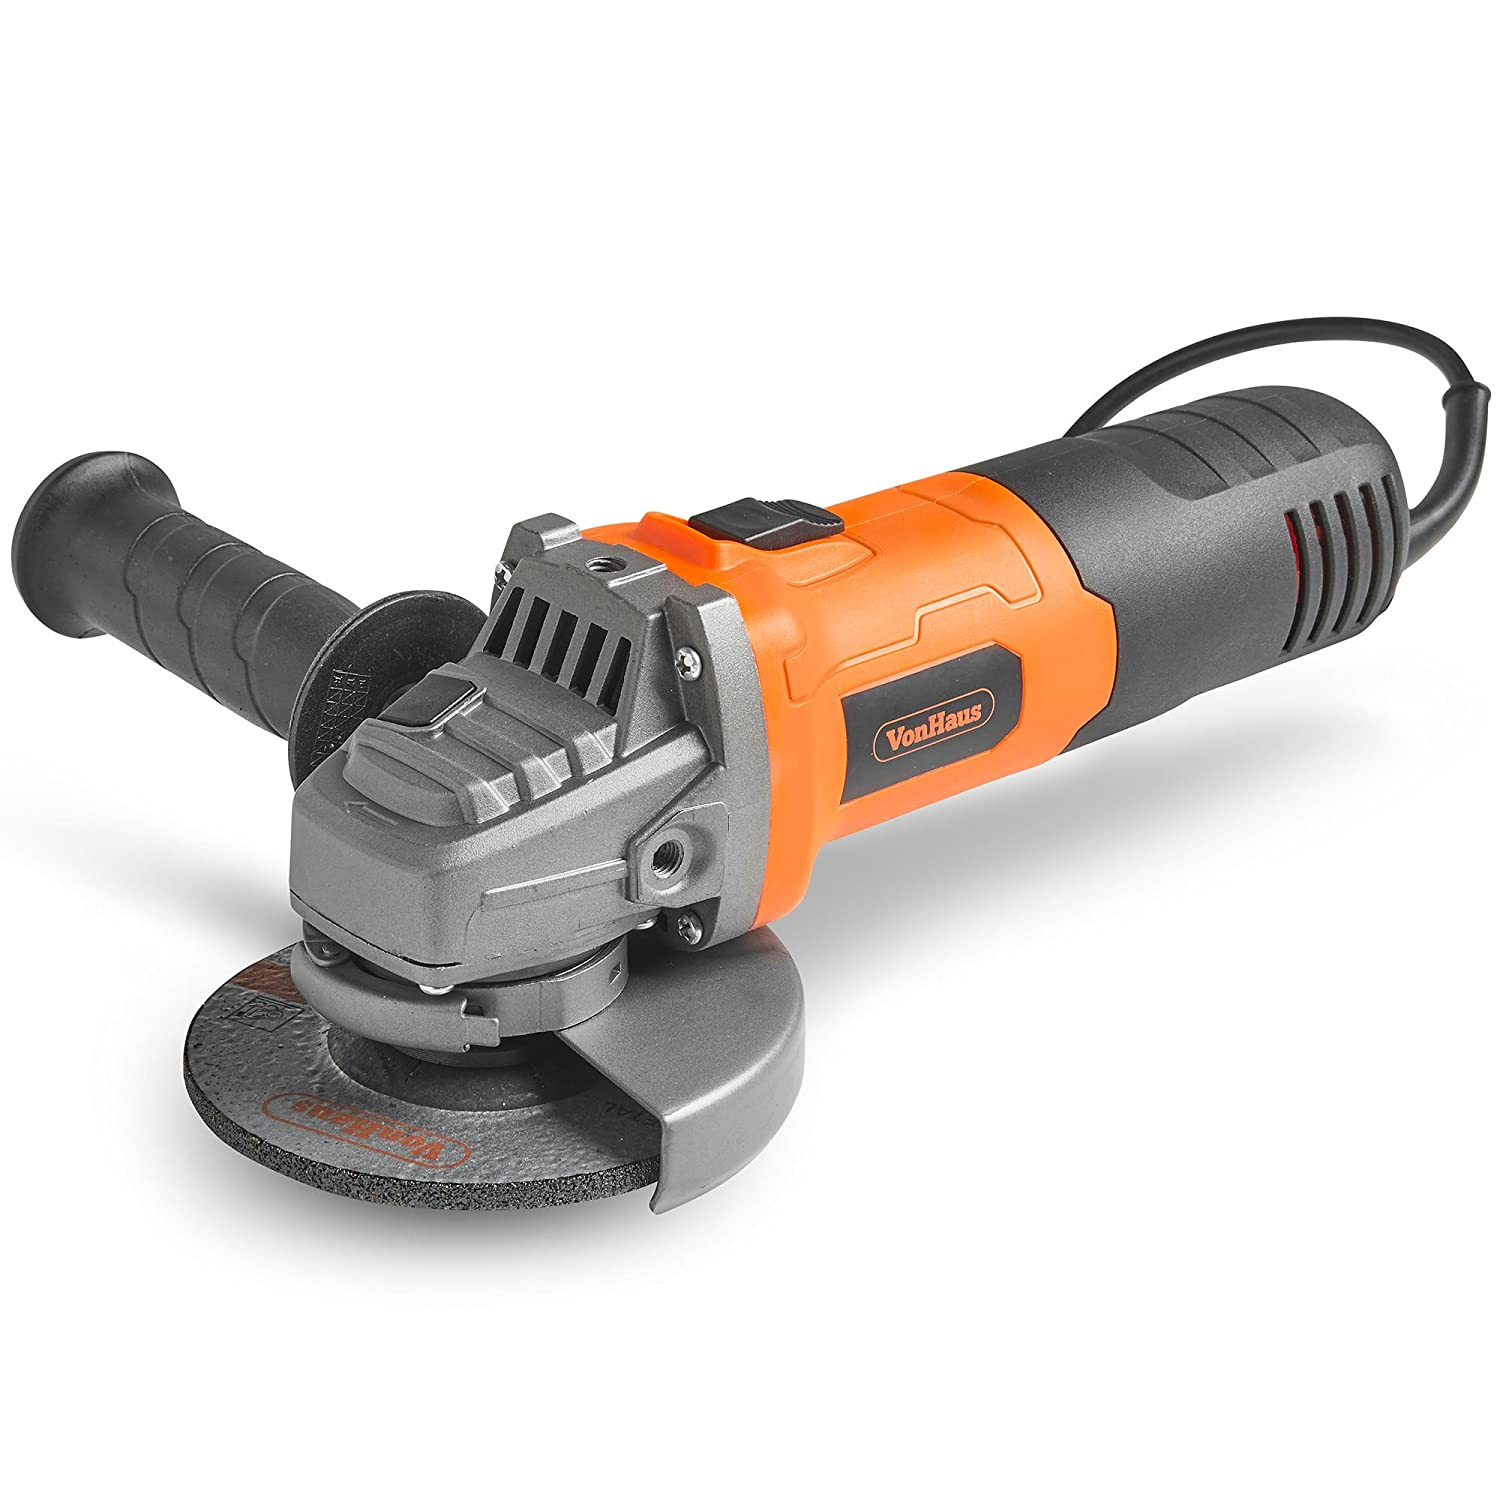 VonHaus 750W Angle Grinder with 115mm Grinding Disc, Side Handle, Protection Switch, Safety Guard & Spanner for Disc Attachment – for Removing Paint & Mortar, Sanding, Cutting, Grinding Or Polishing